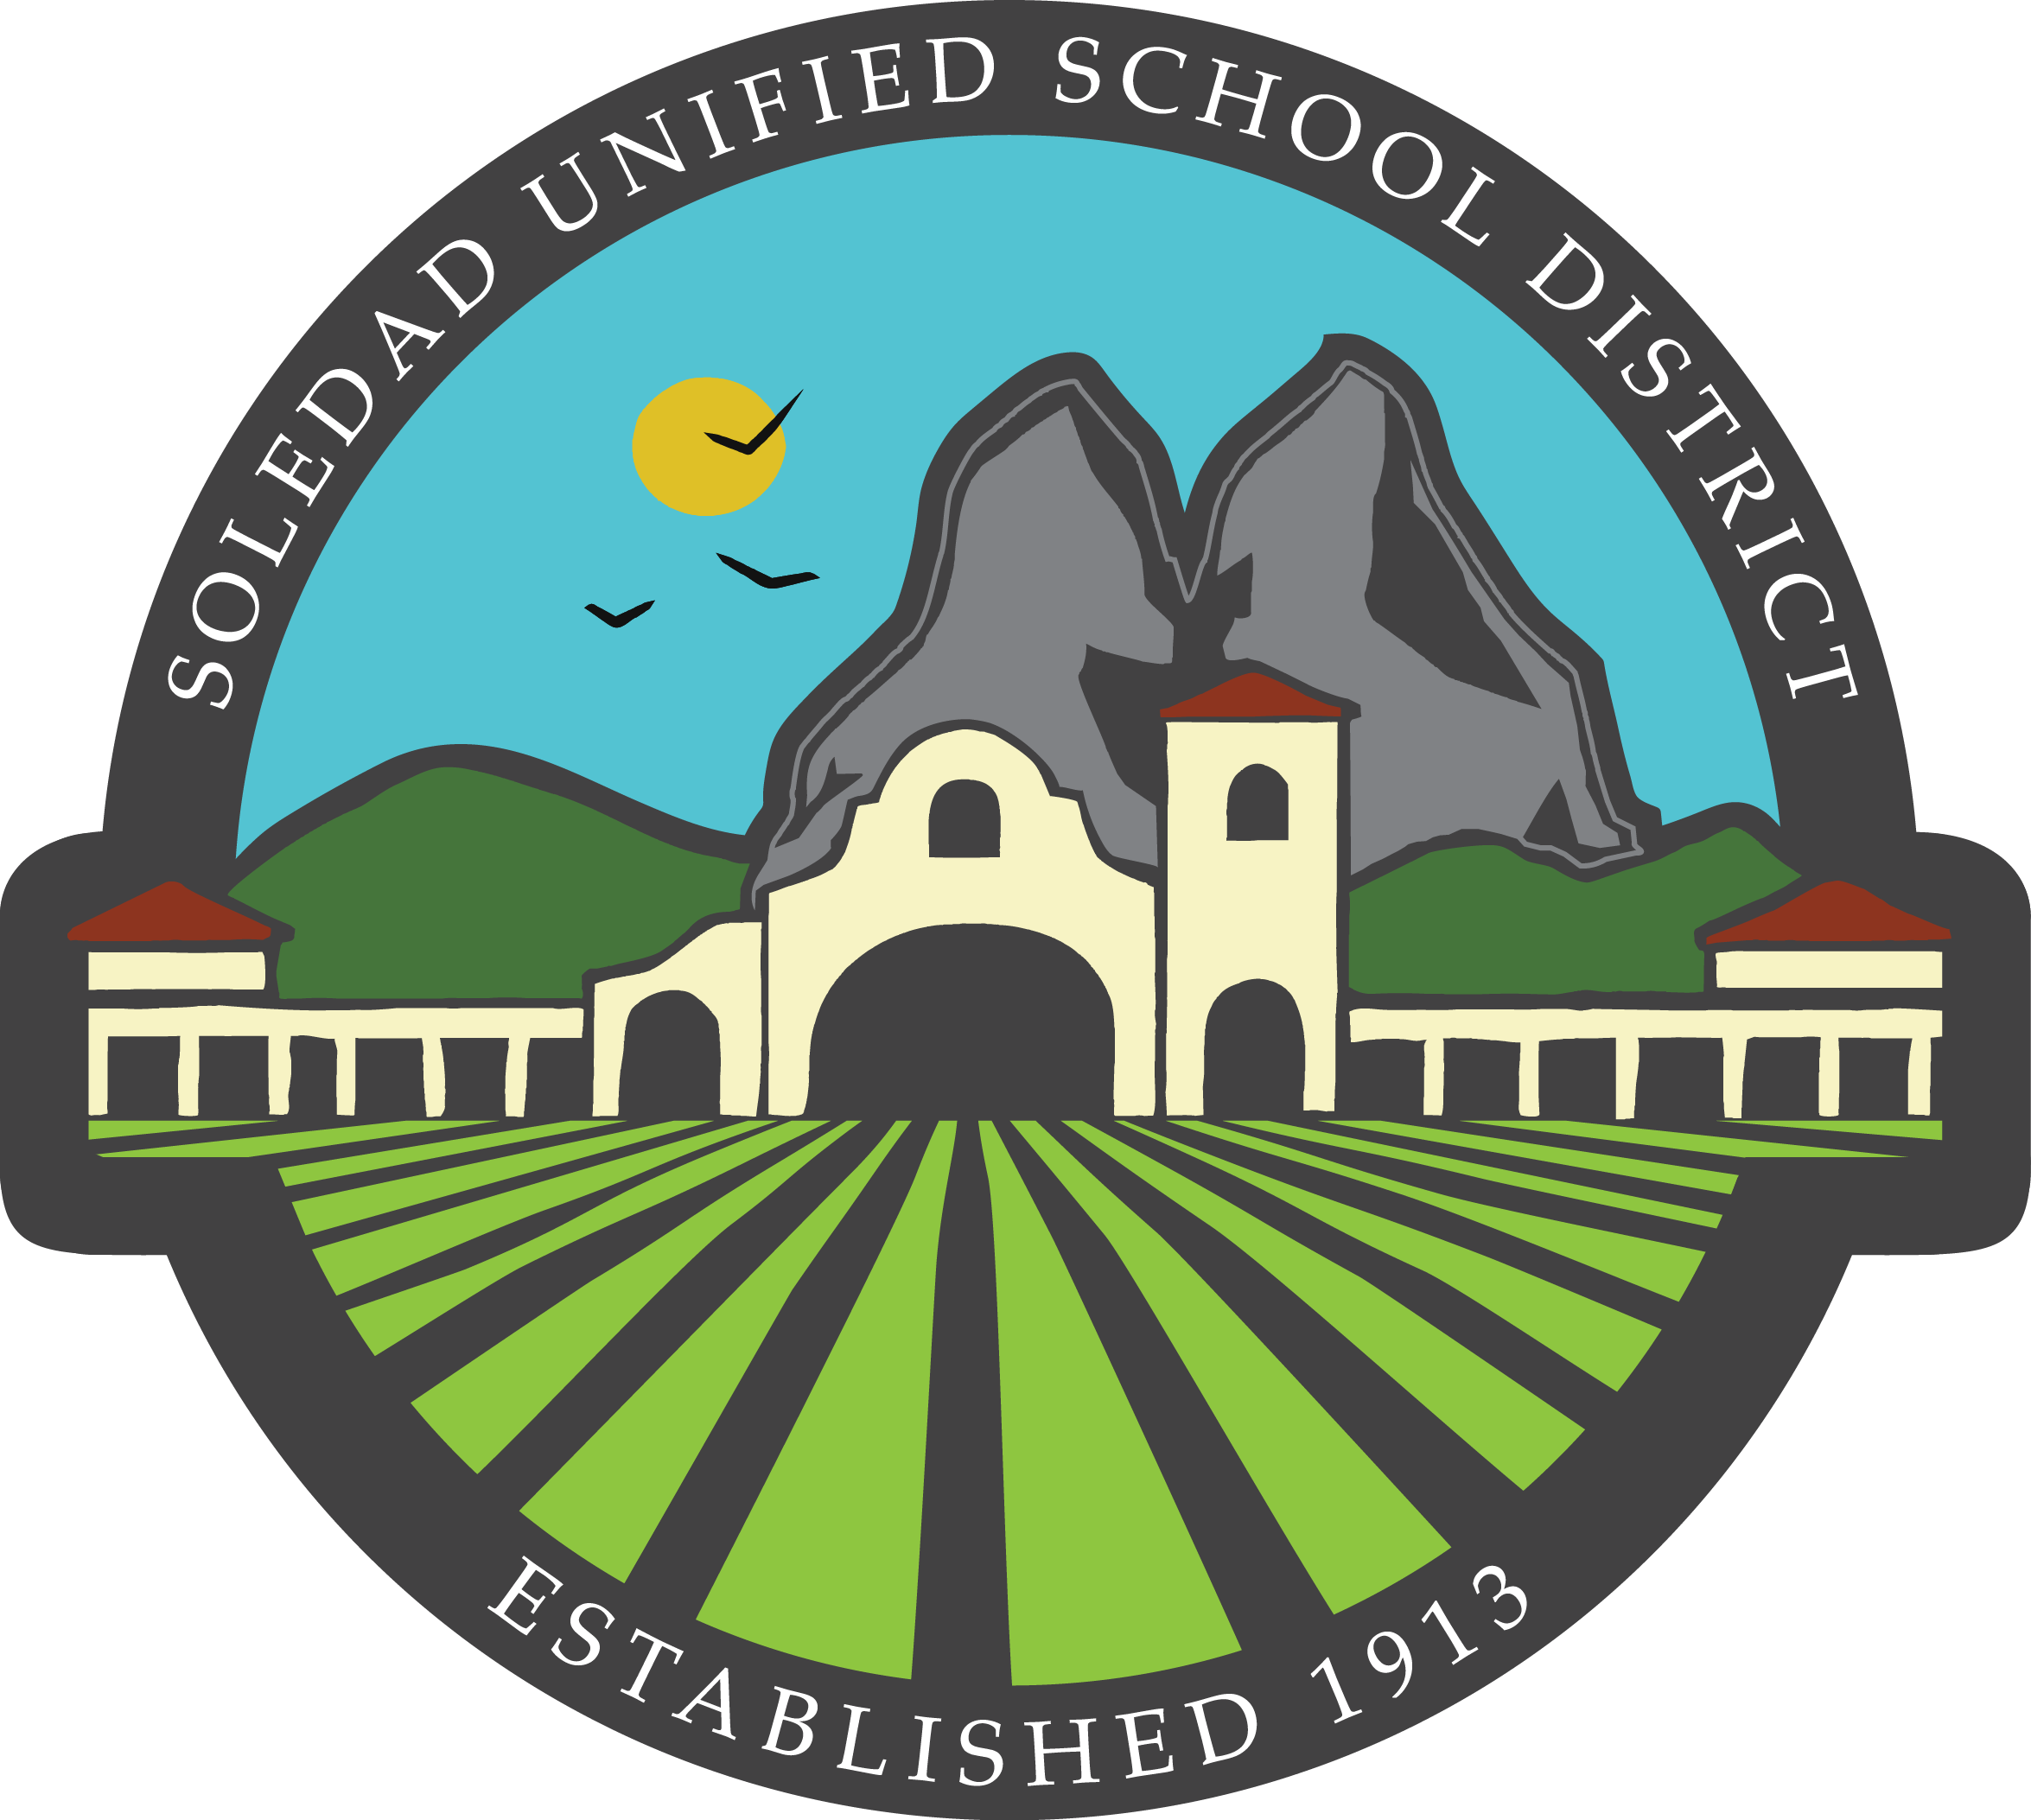 pine circle unified school district Paradise unified school district cedarwood elementary school honey run academy paradise elearning academy paradise elementary school  pine ridge school facebook.